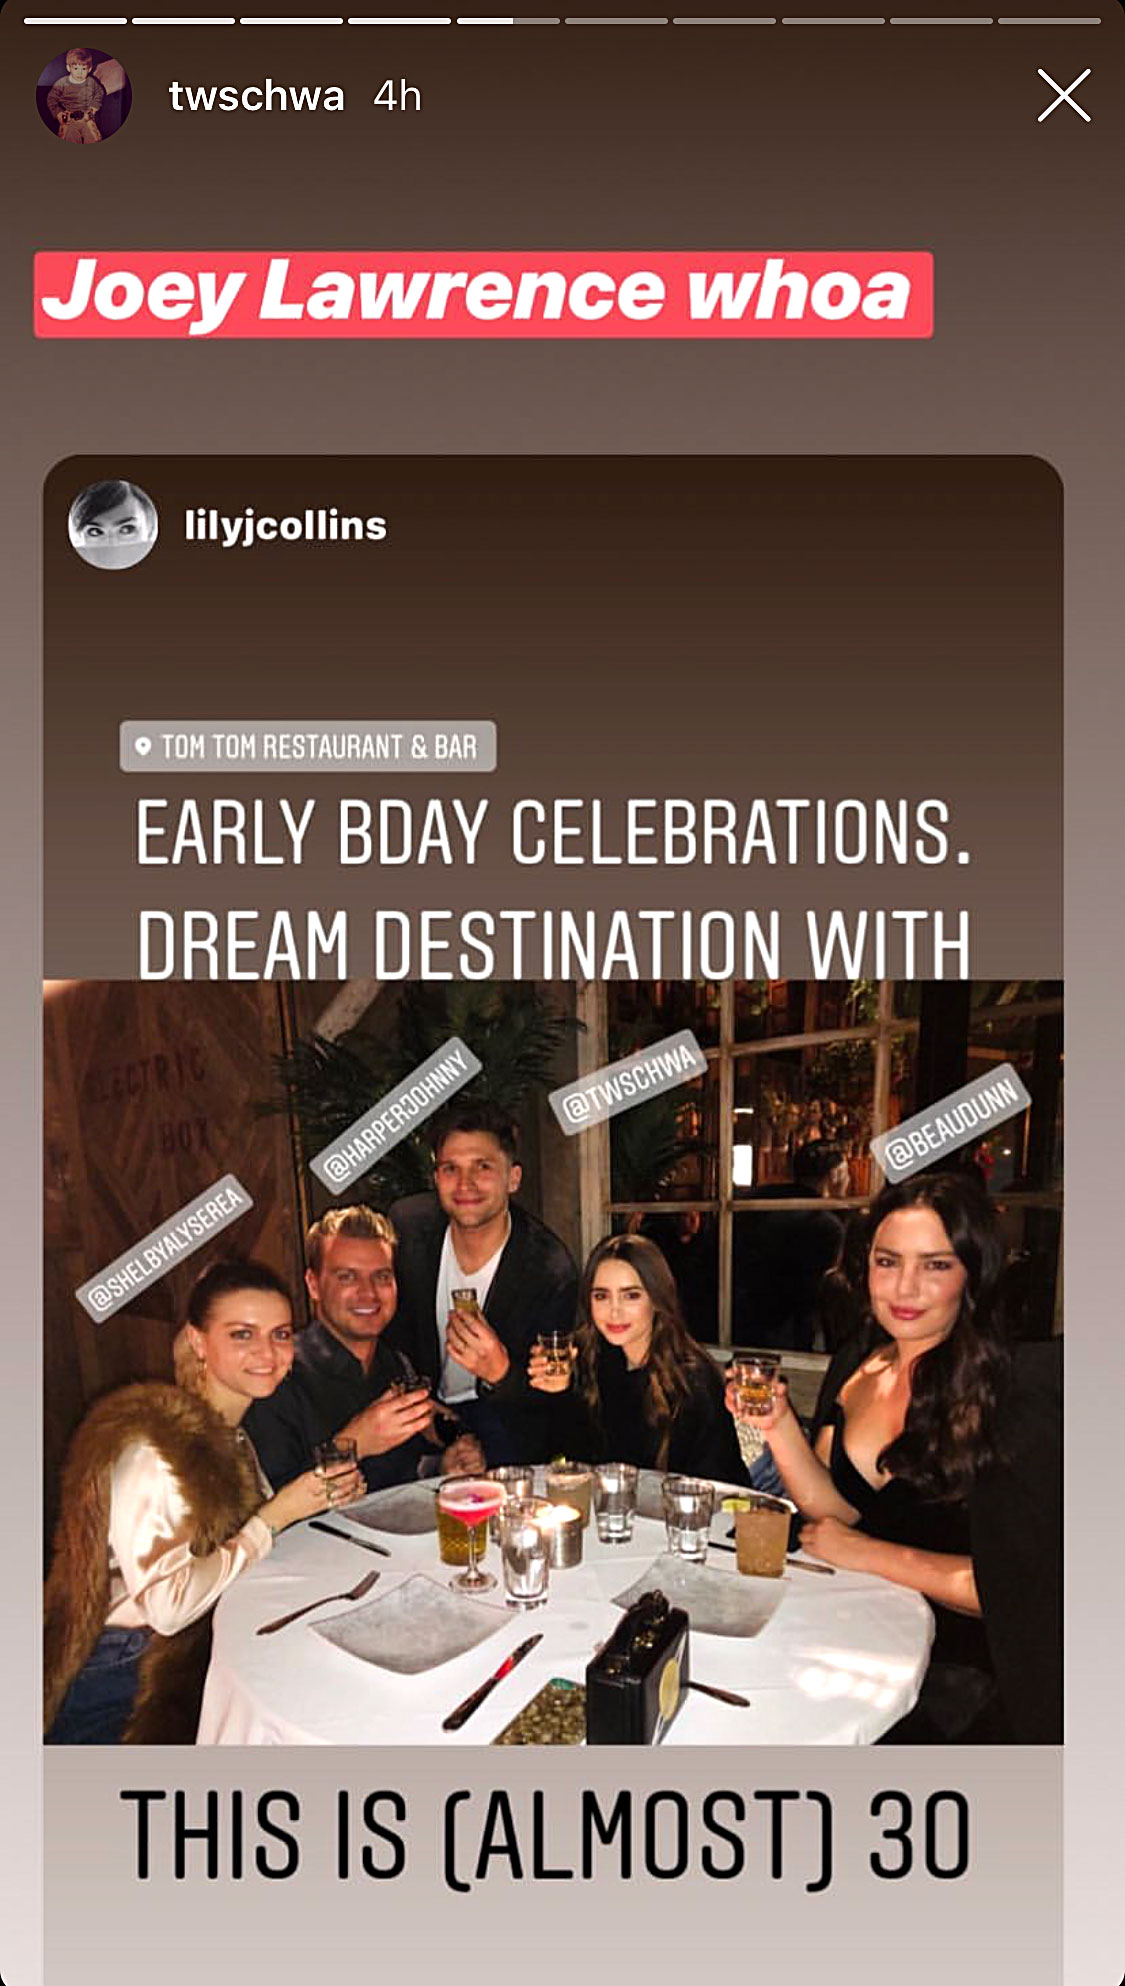 Celebs at Tom Tom Lily Collins - The Mirror Mirror star ventured to Tom Tom in February 2019 as part of an early celebration for her 30th birthday, which was the following month. According to a post on Tom Schwartz's Instagram Stories, the actress enjoyed some of the establishment's signature cocktails alongside pals Johnny Harper and Beau Dunn.